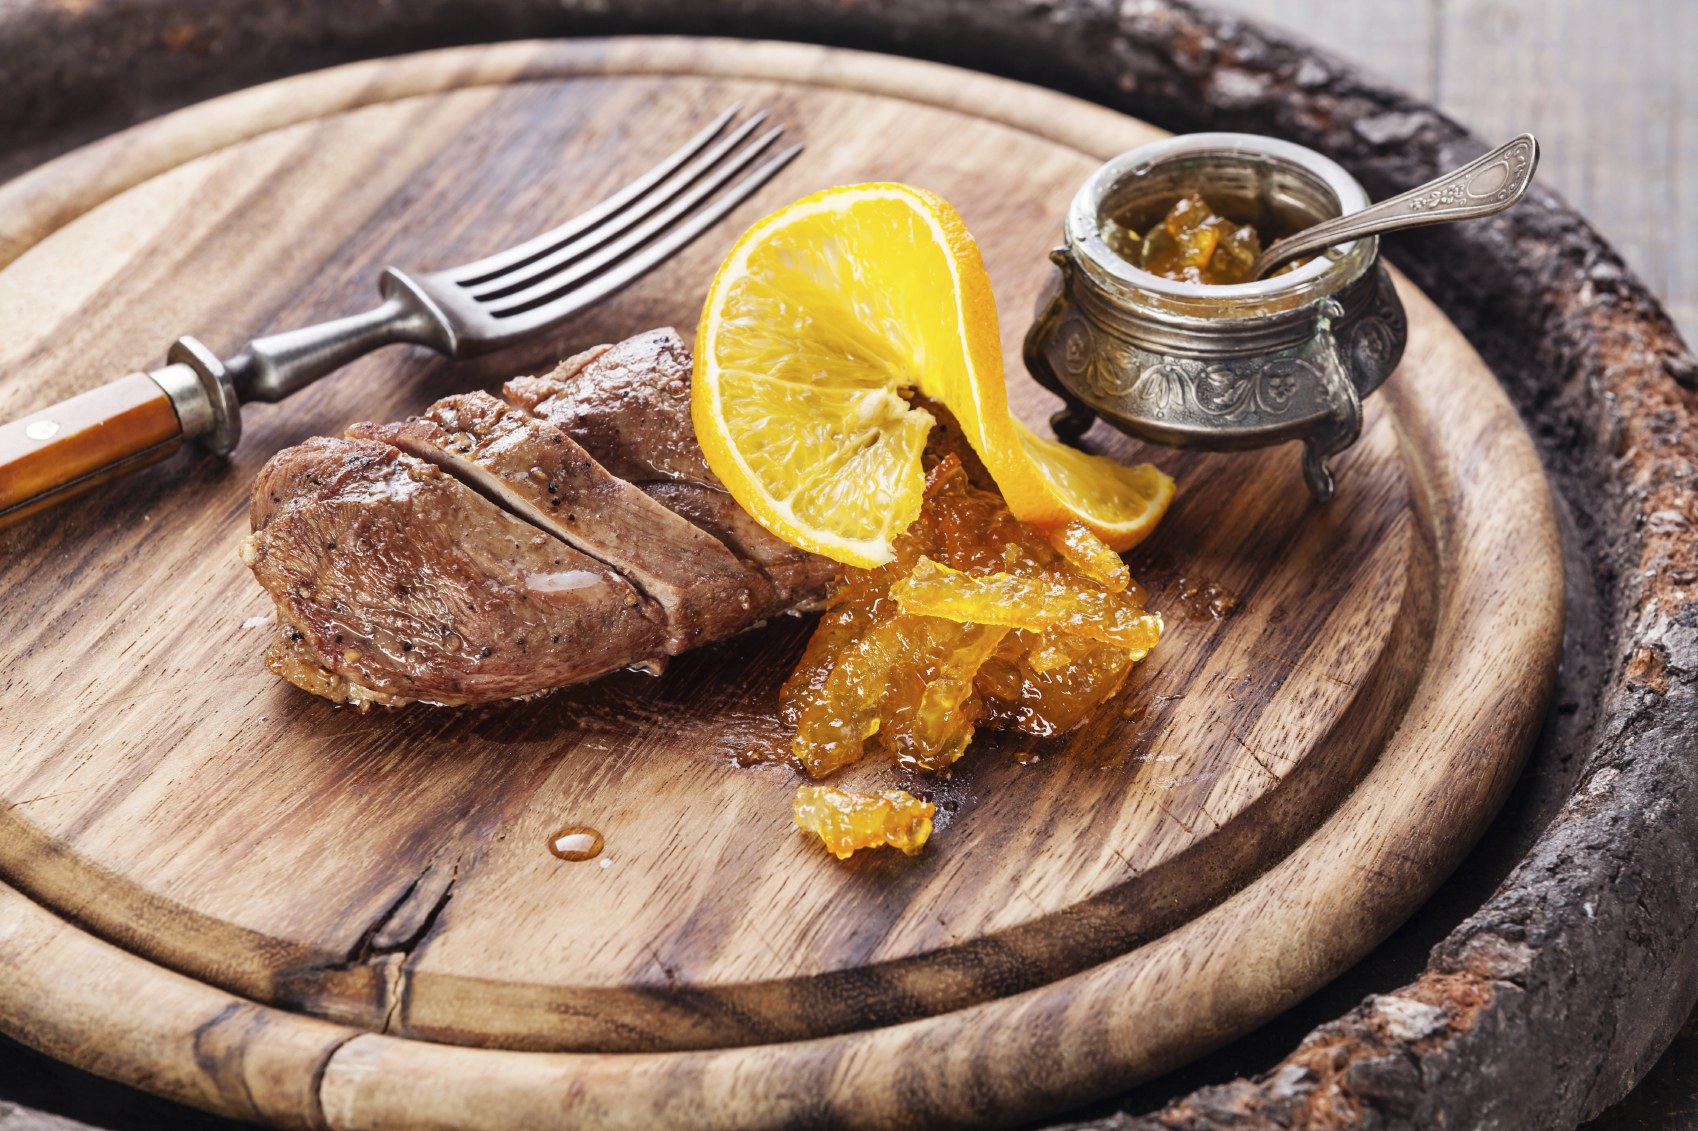 4  Use cumin in this duck recipe. Sexy time  7 recipes to spice things up in the bedroom  Doctor s